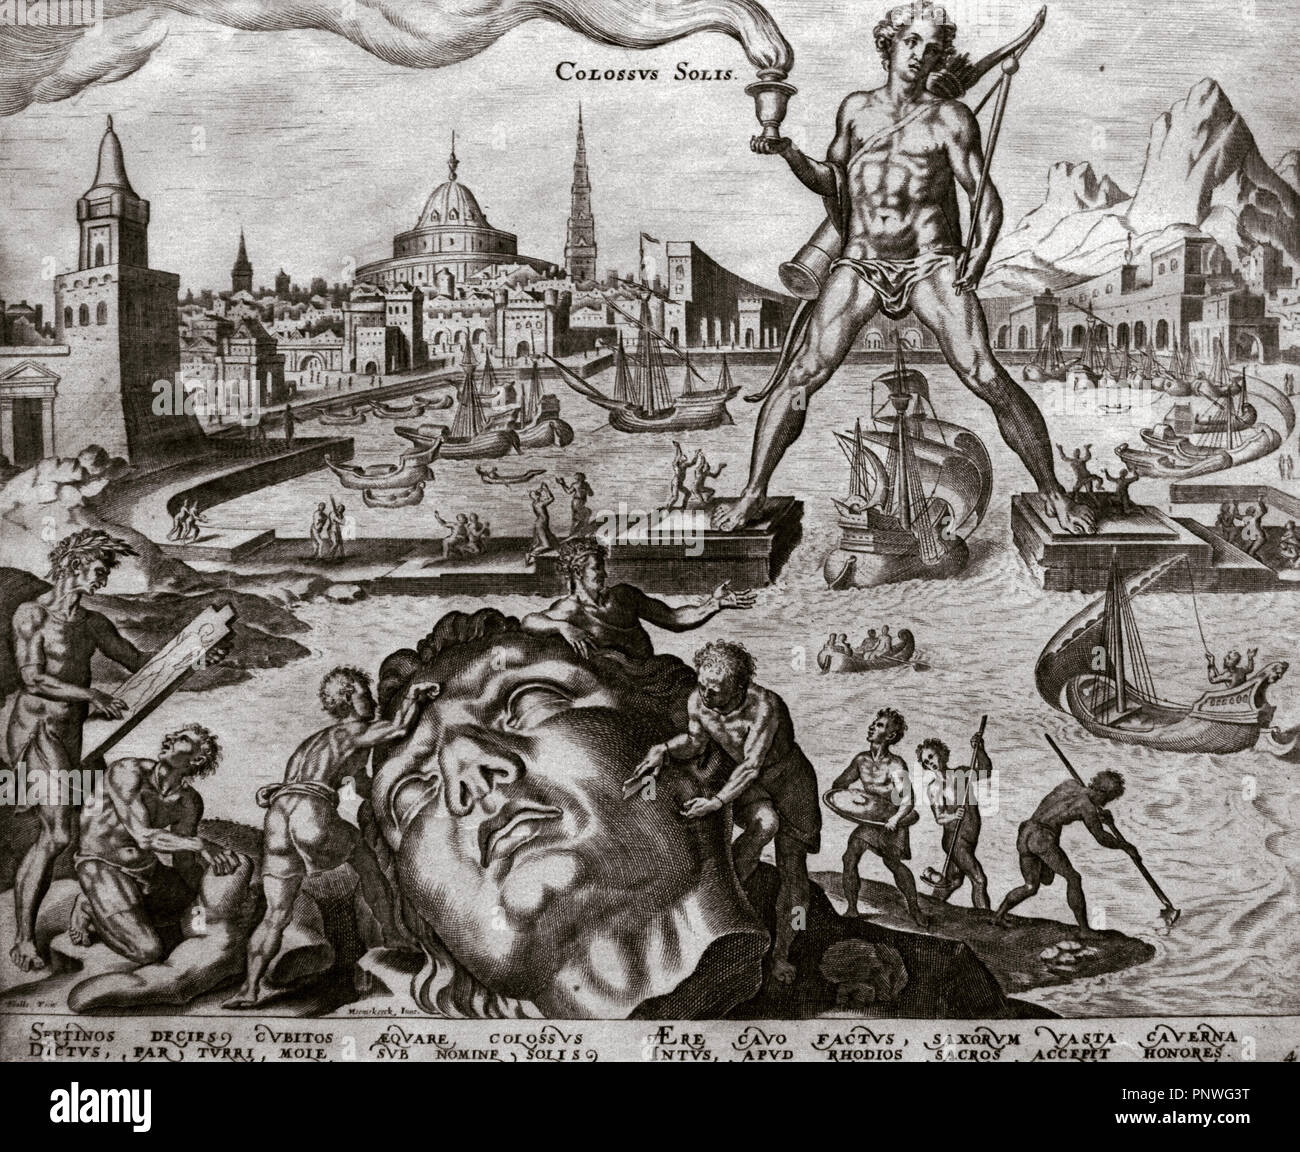 Seven Wonders of the Ancient World. The Colossus of Rhodes. Engraving by Philip Galle (1537-1612) after Martin van Heemskerck (1498-1574). 16th century. The Nelson-Atkins Museum of Art. Kansas City. United States. - Stock Image